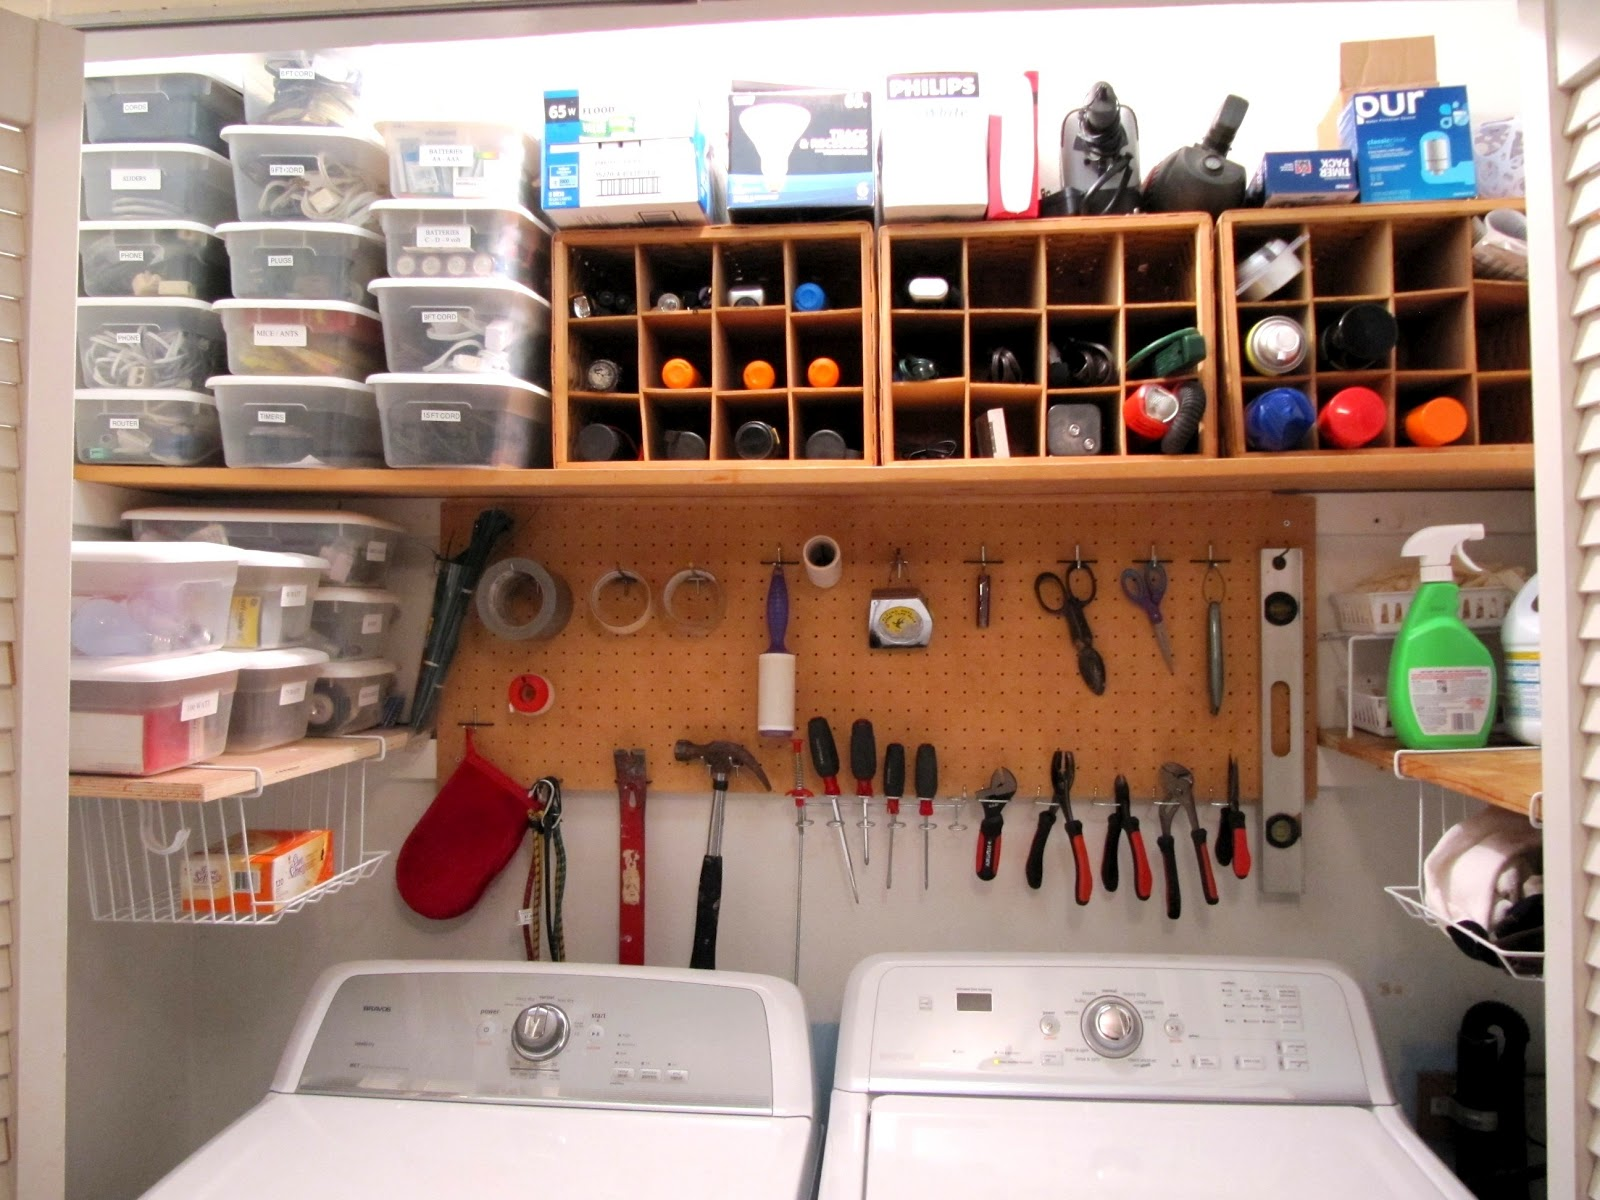 Organized Laundry Space With Tools, Sew Many Ways